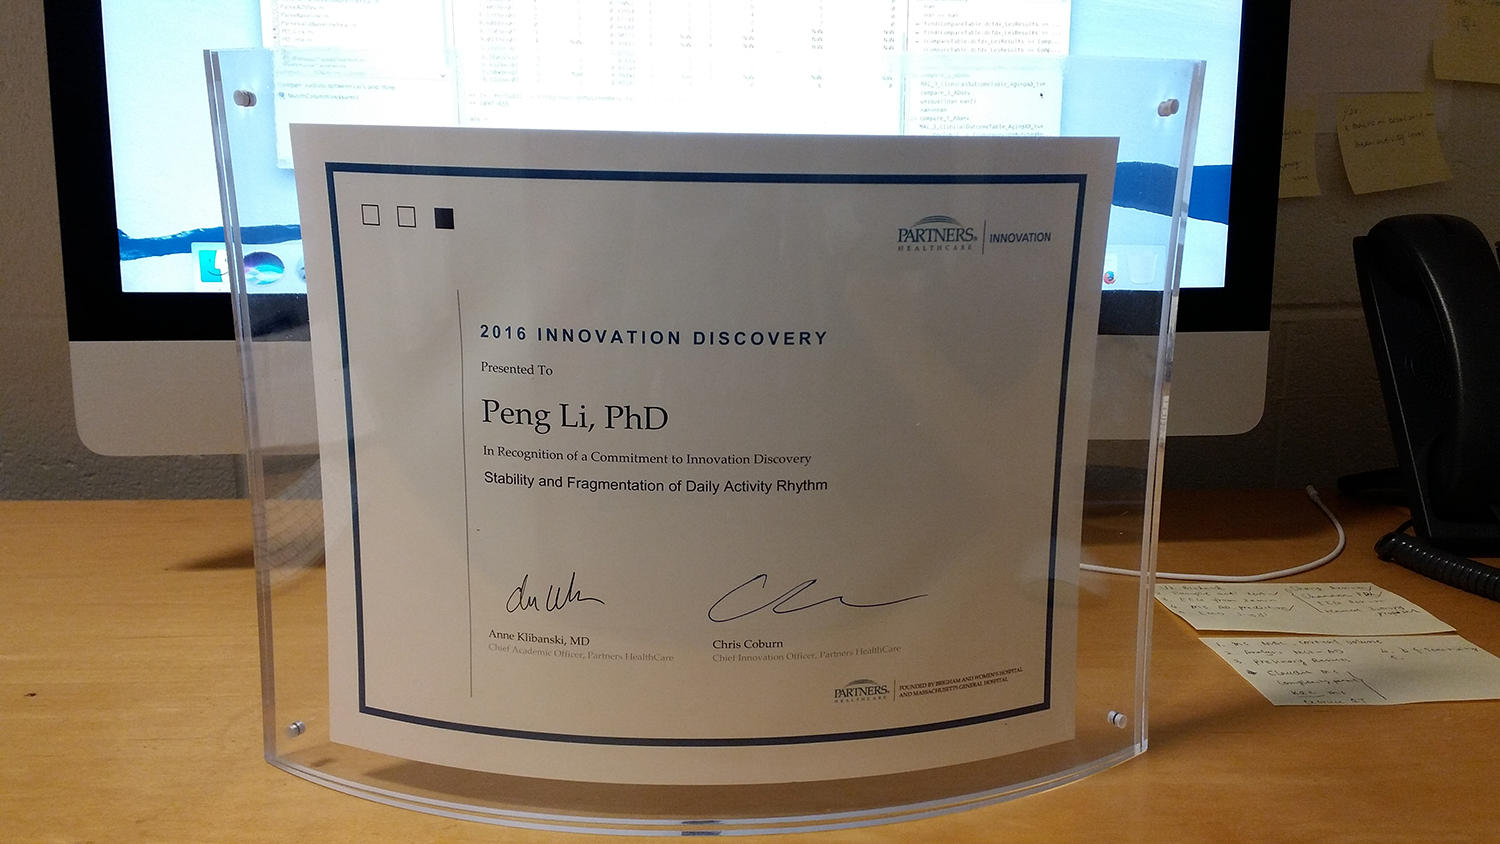 2016 Innovation discovery presented to Peng Li, PhD.